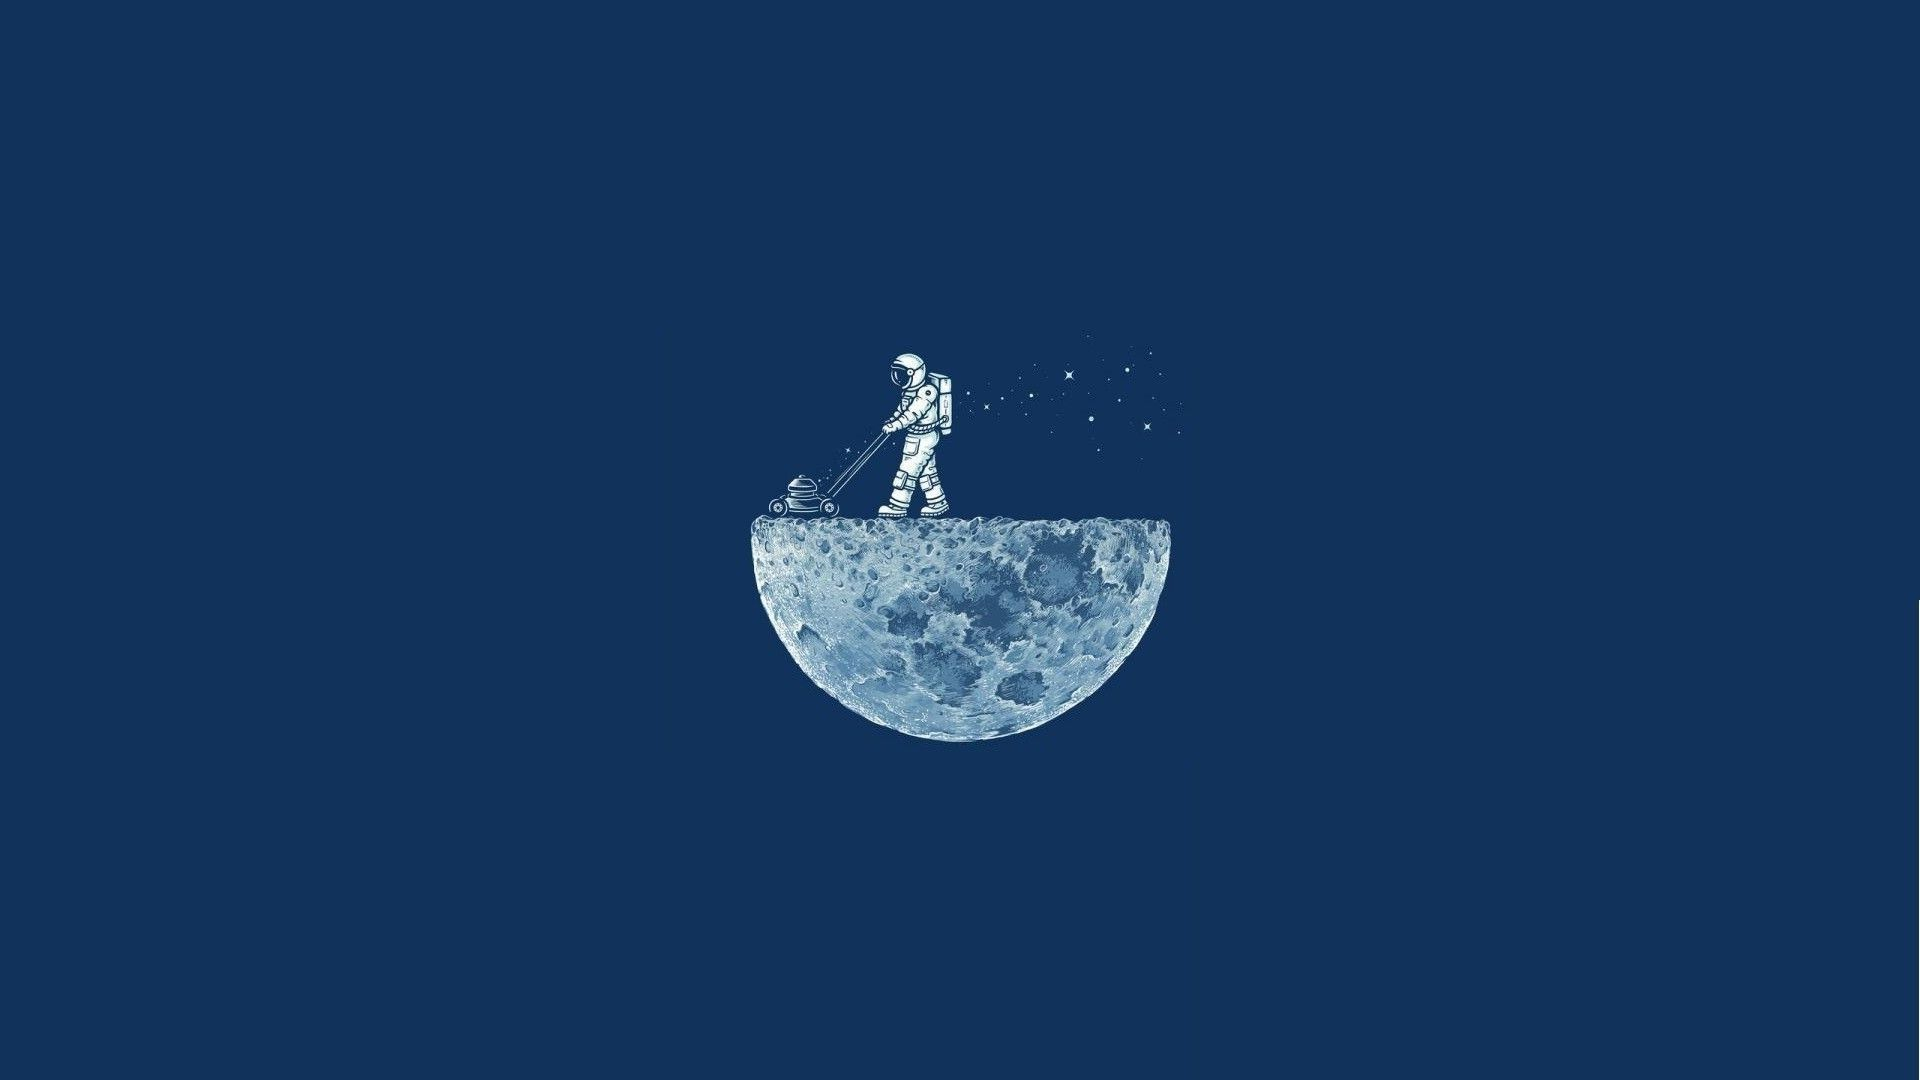 Space Minimalism Blue Background Moon Astronaut Astronauts Humor Wallpapers Hd Desktop And Mobile Backgrounds Pc 배경화면 컴퓨터 바탕화면 컴퓨터 배경화면